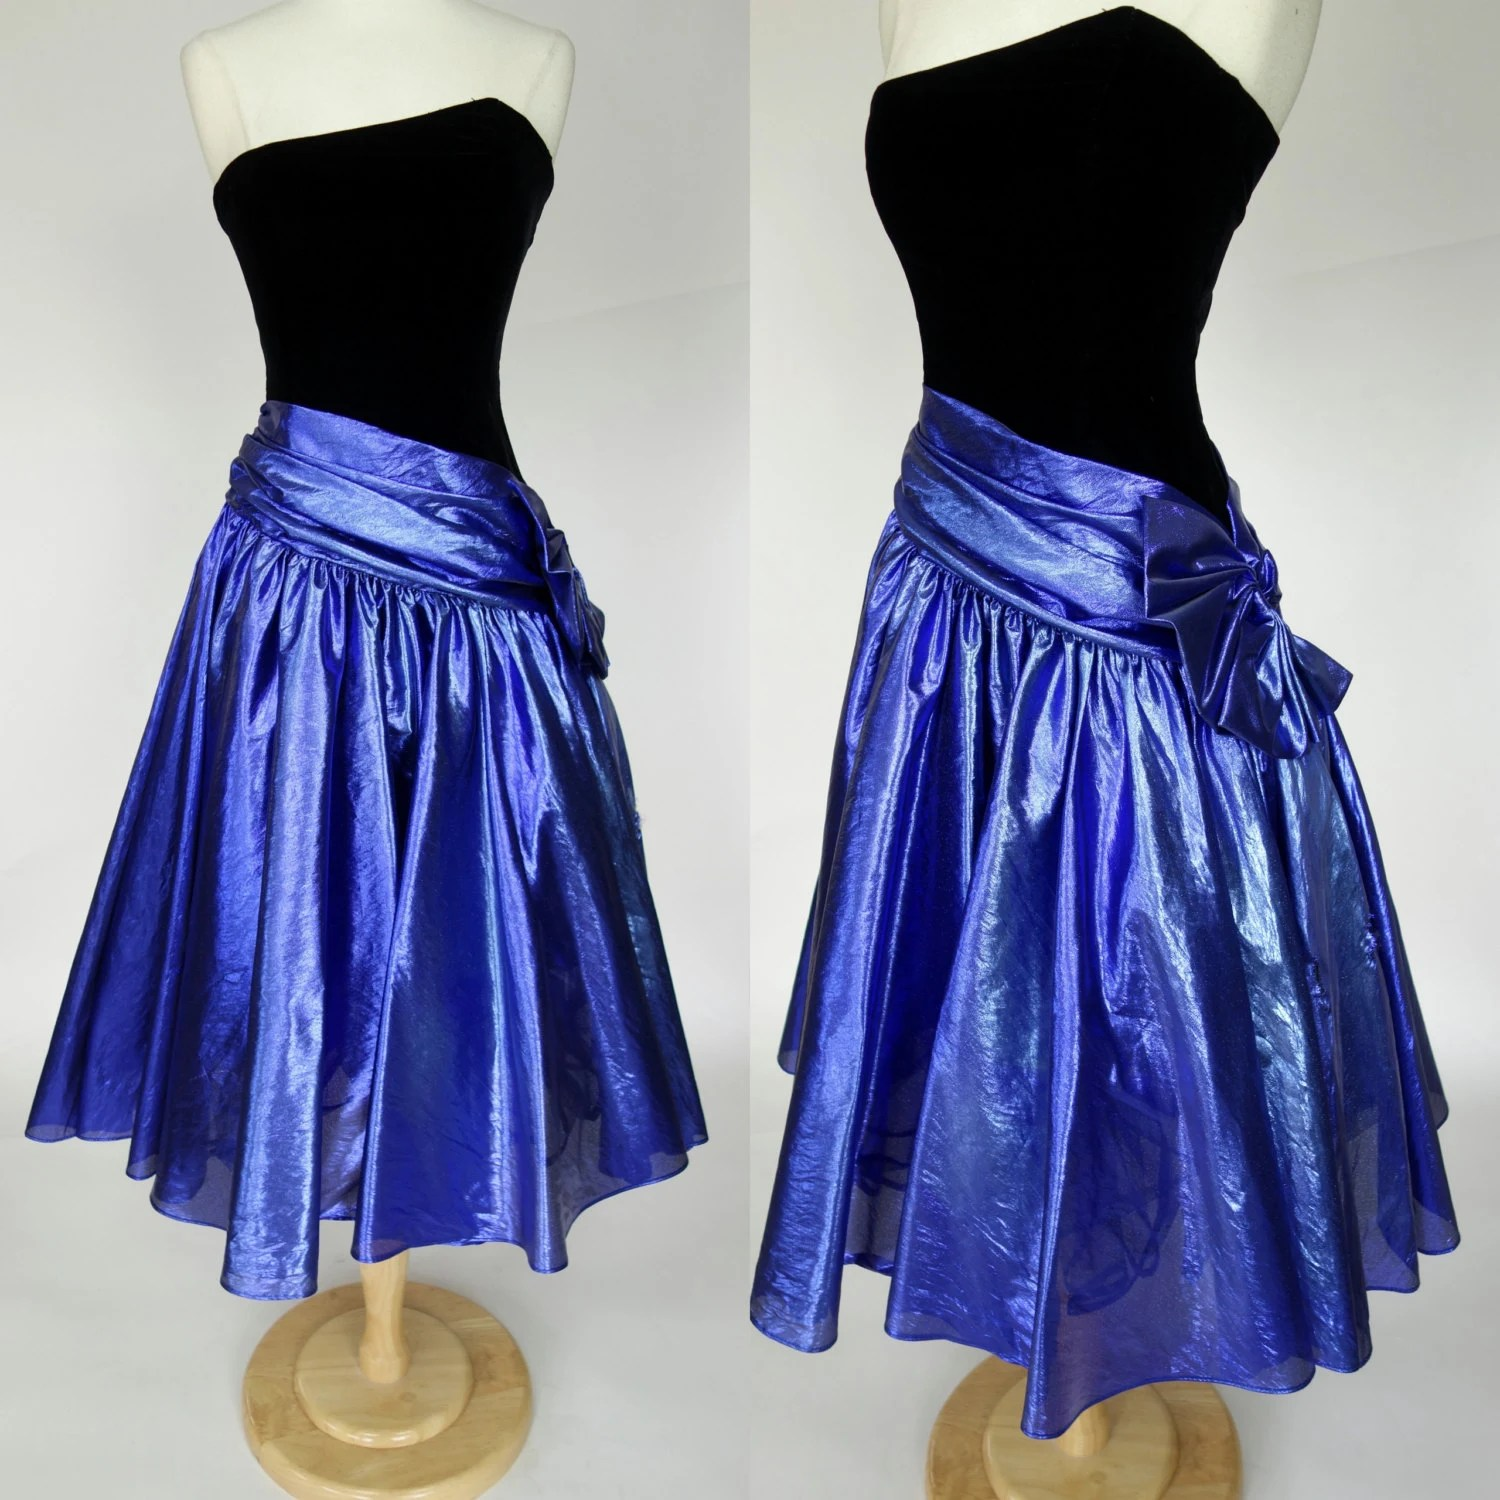 1980s metallic prom dress blue foiled fit and by DottieMaeVintage